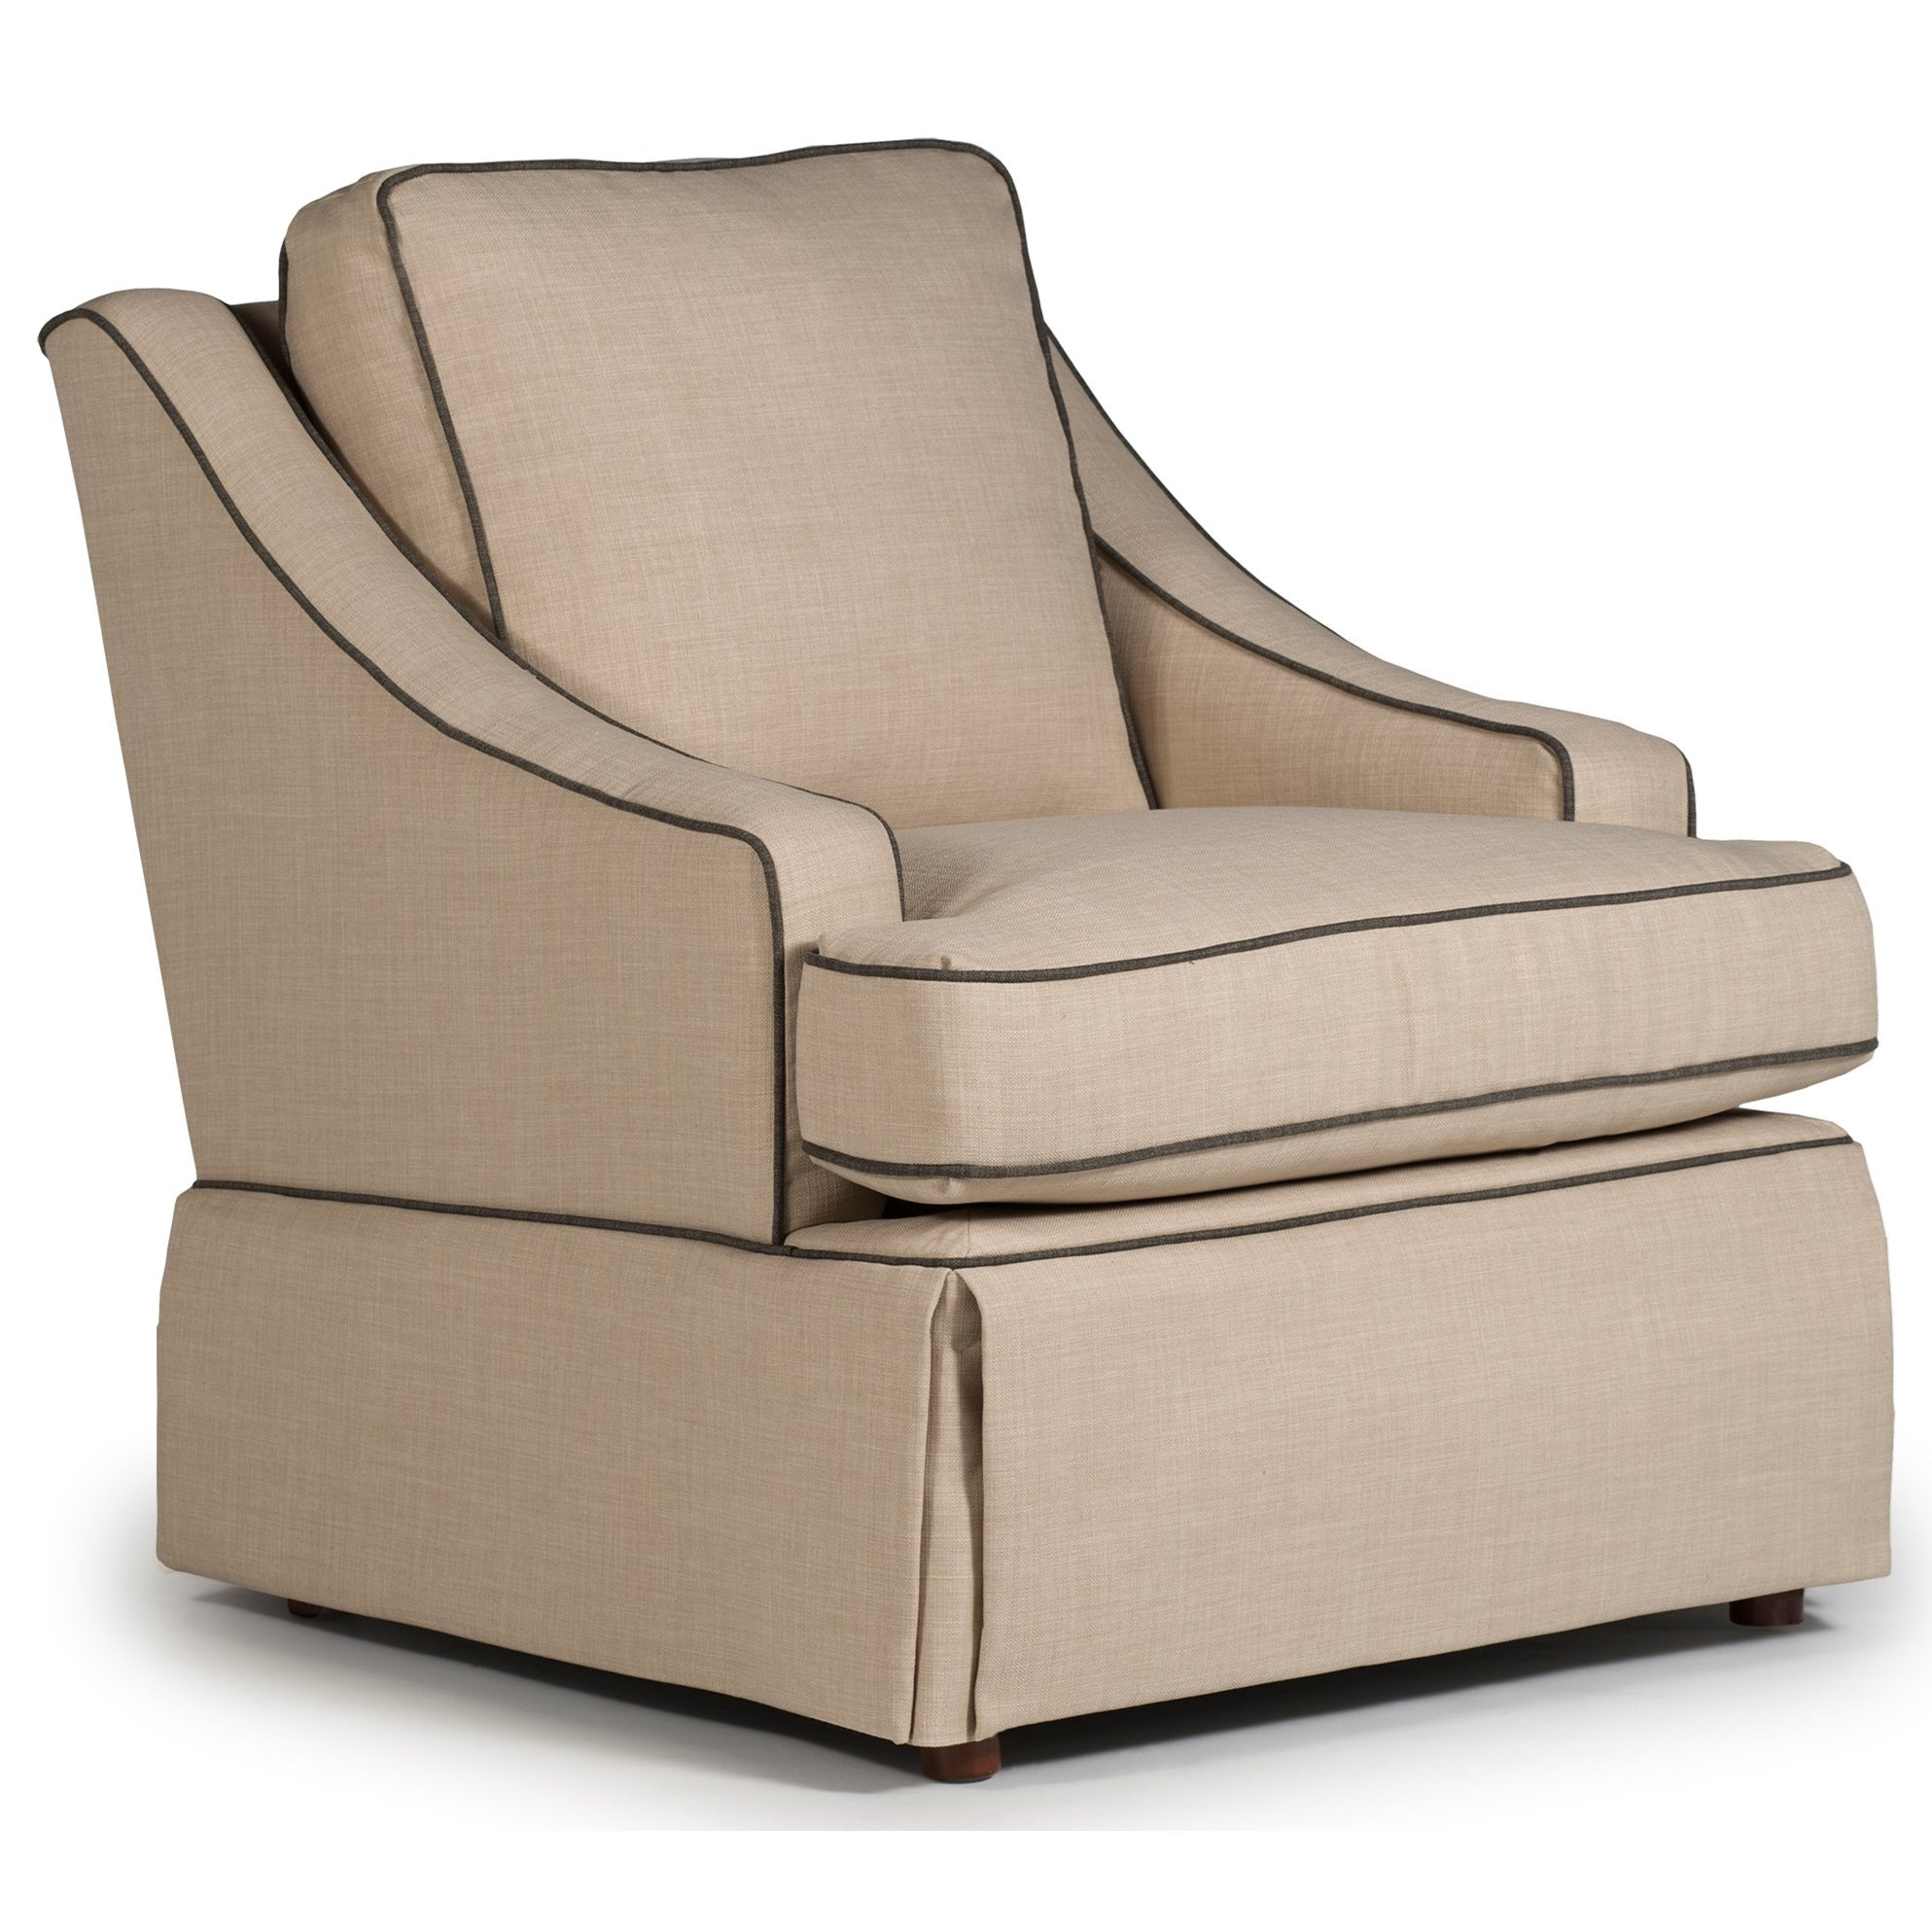 best glider chairs perfect chair craigslist home furnishings swivel glide contemporary